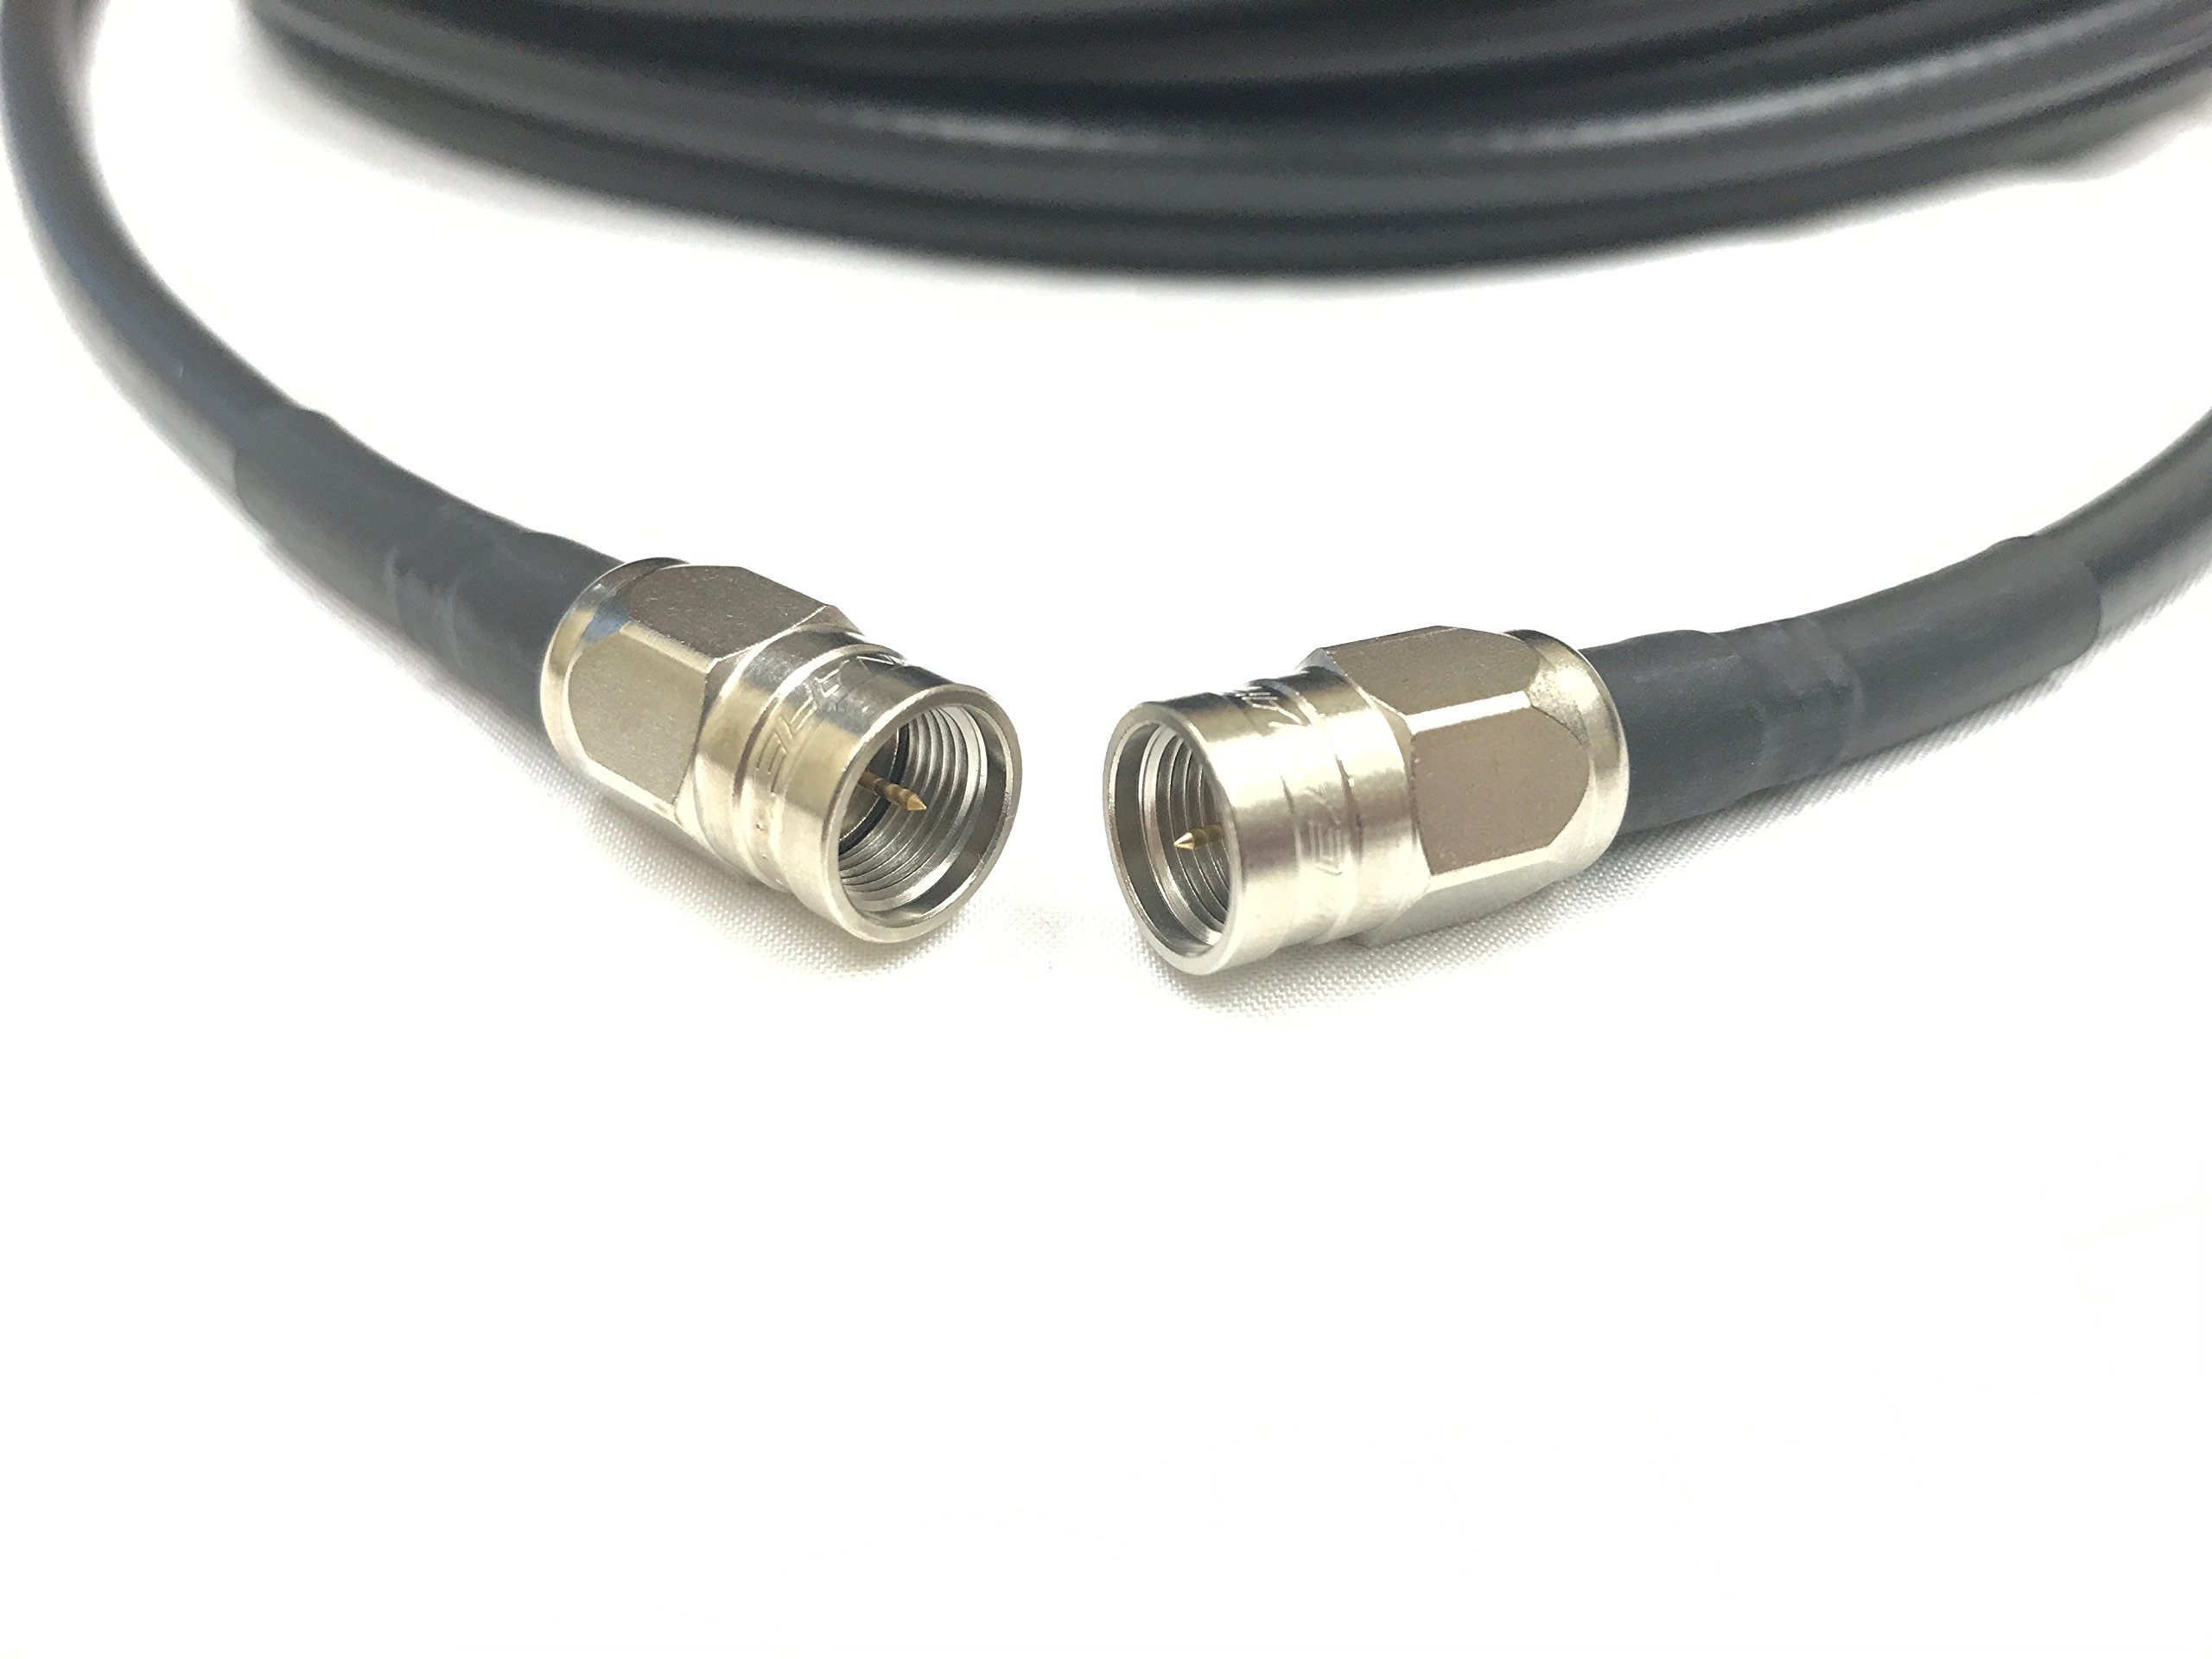 3 Foot Canare F-Type Male to Male Connectors on Belden 1694A RG6 Broadcast 4K Coaxial CL2 75 Ohm Cable by Custom Cable Connection